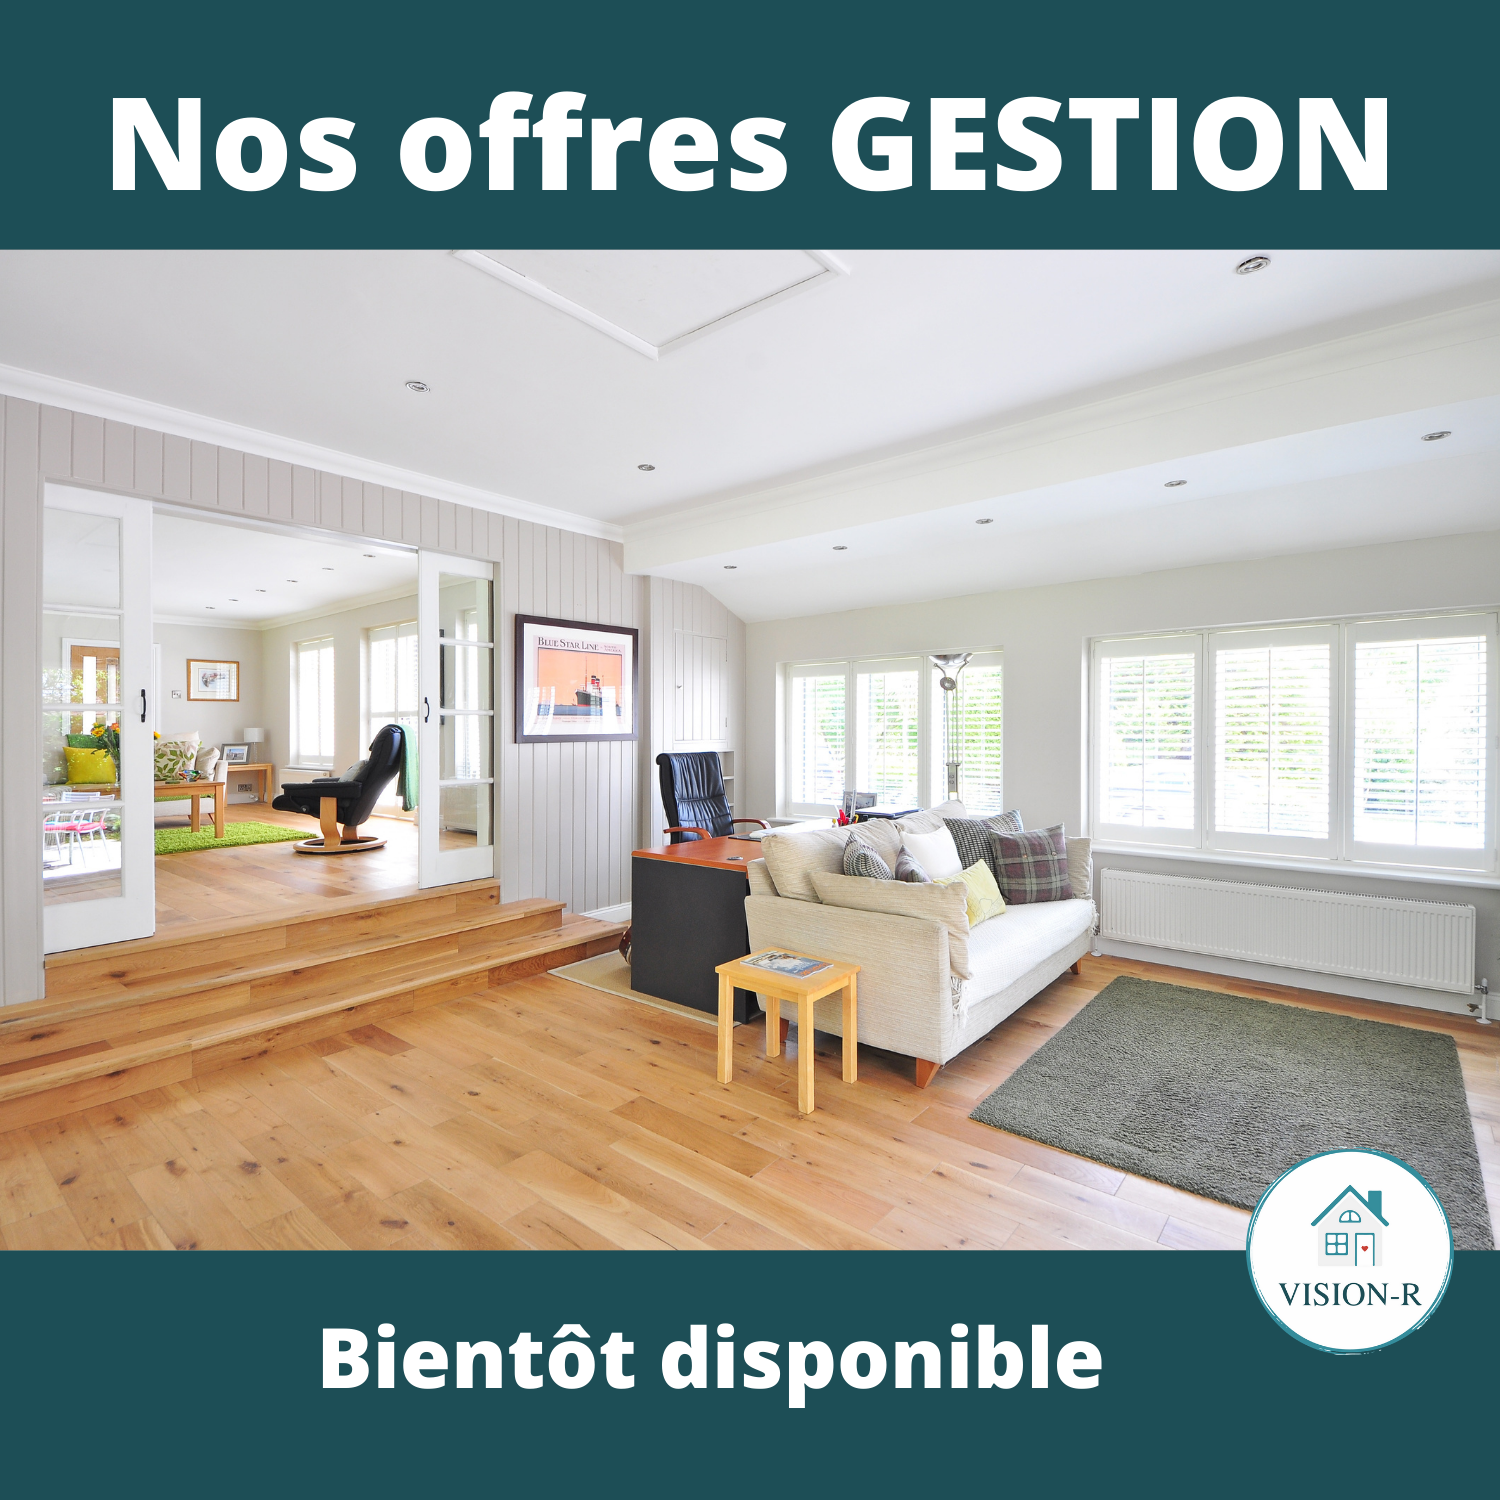 Offre gestion Vision-R immobilier